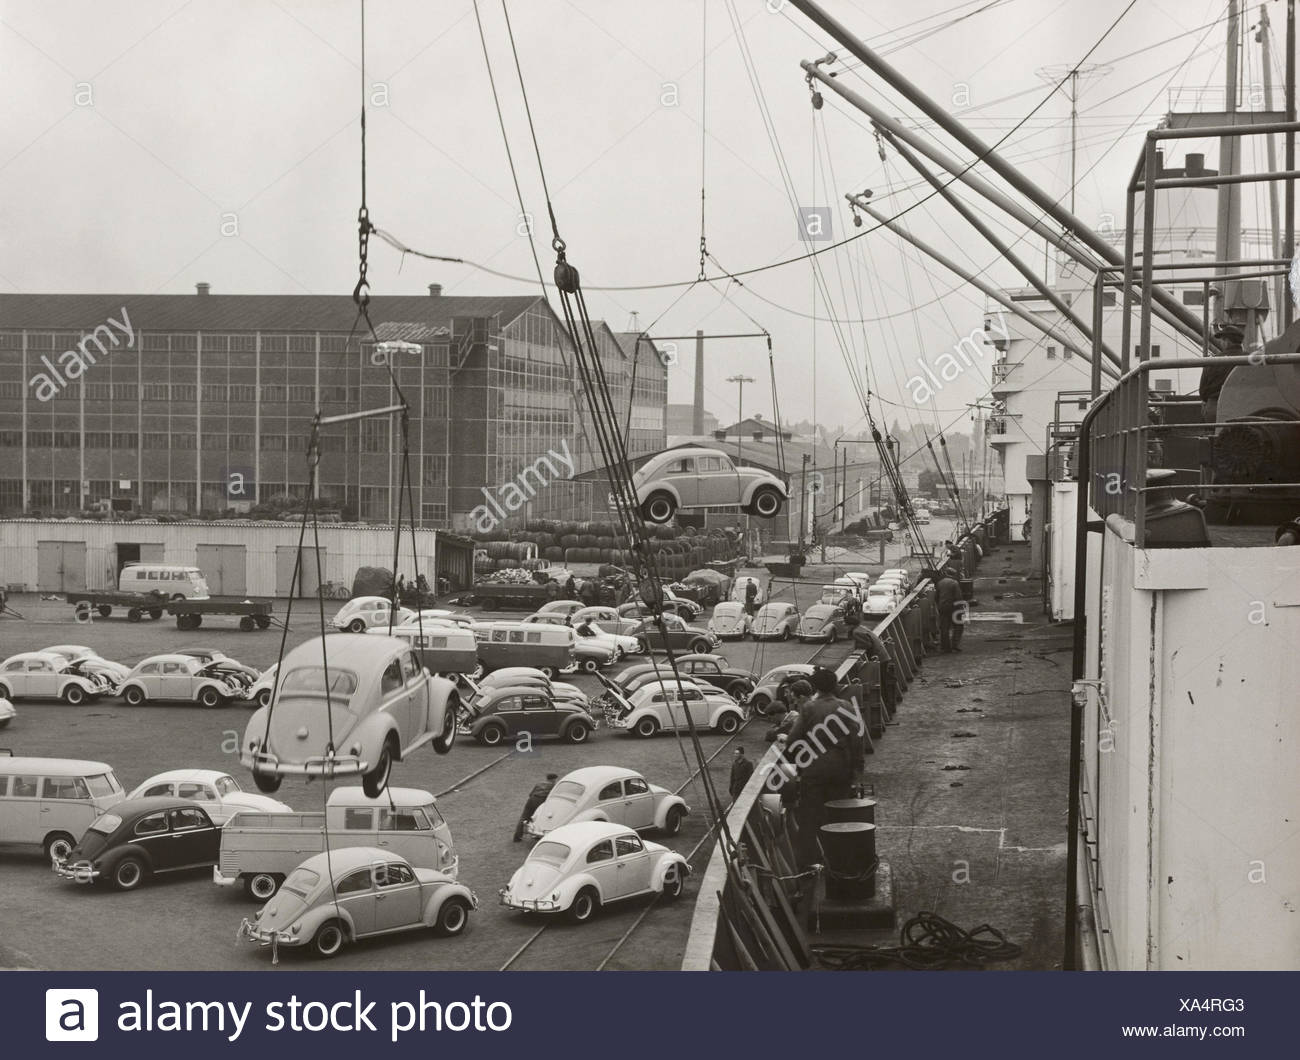 Germany Harbour Freighter Cranes Workers Vw Beetle Load B W